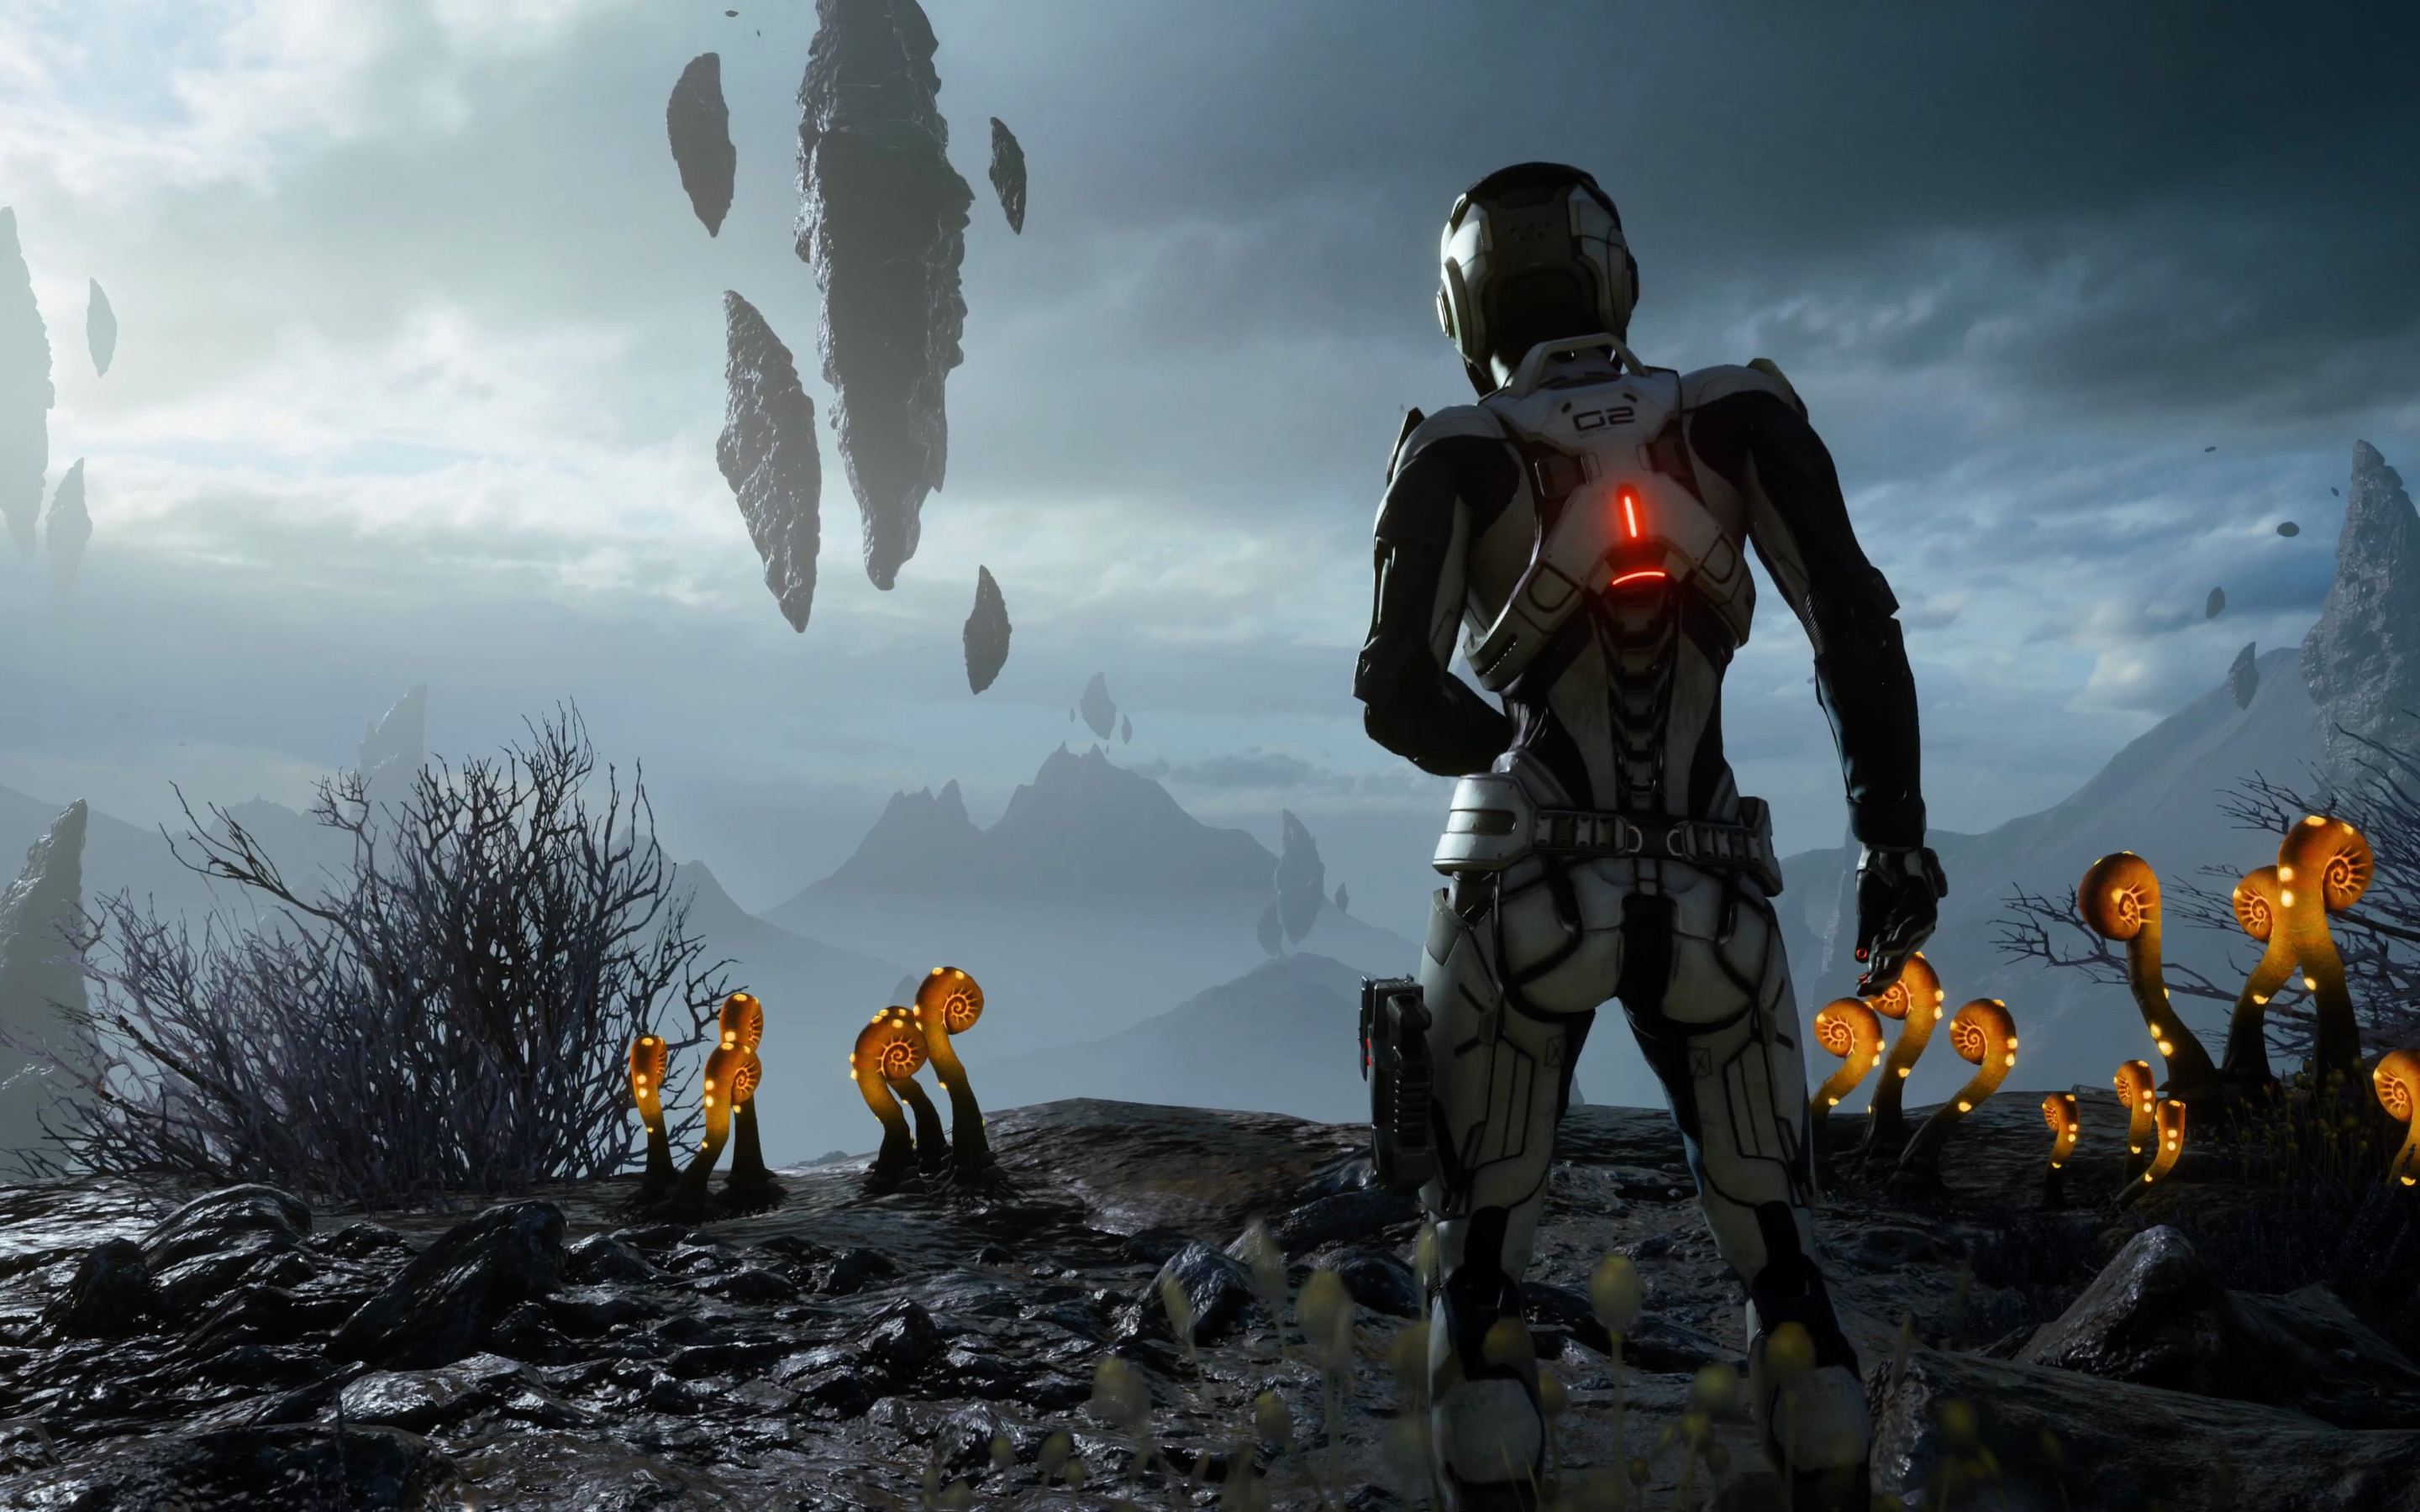 2880x1800 Mass Effect Andromeda Hd Game Macbook Pro Retina Hd 4k